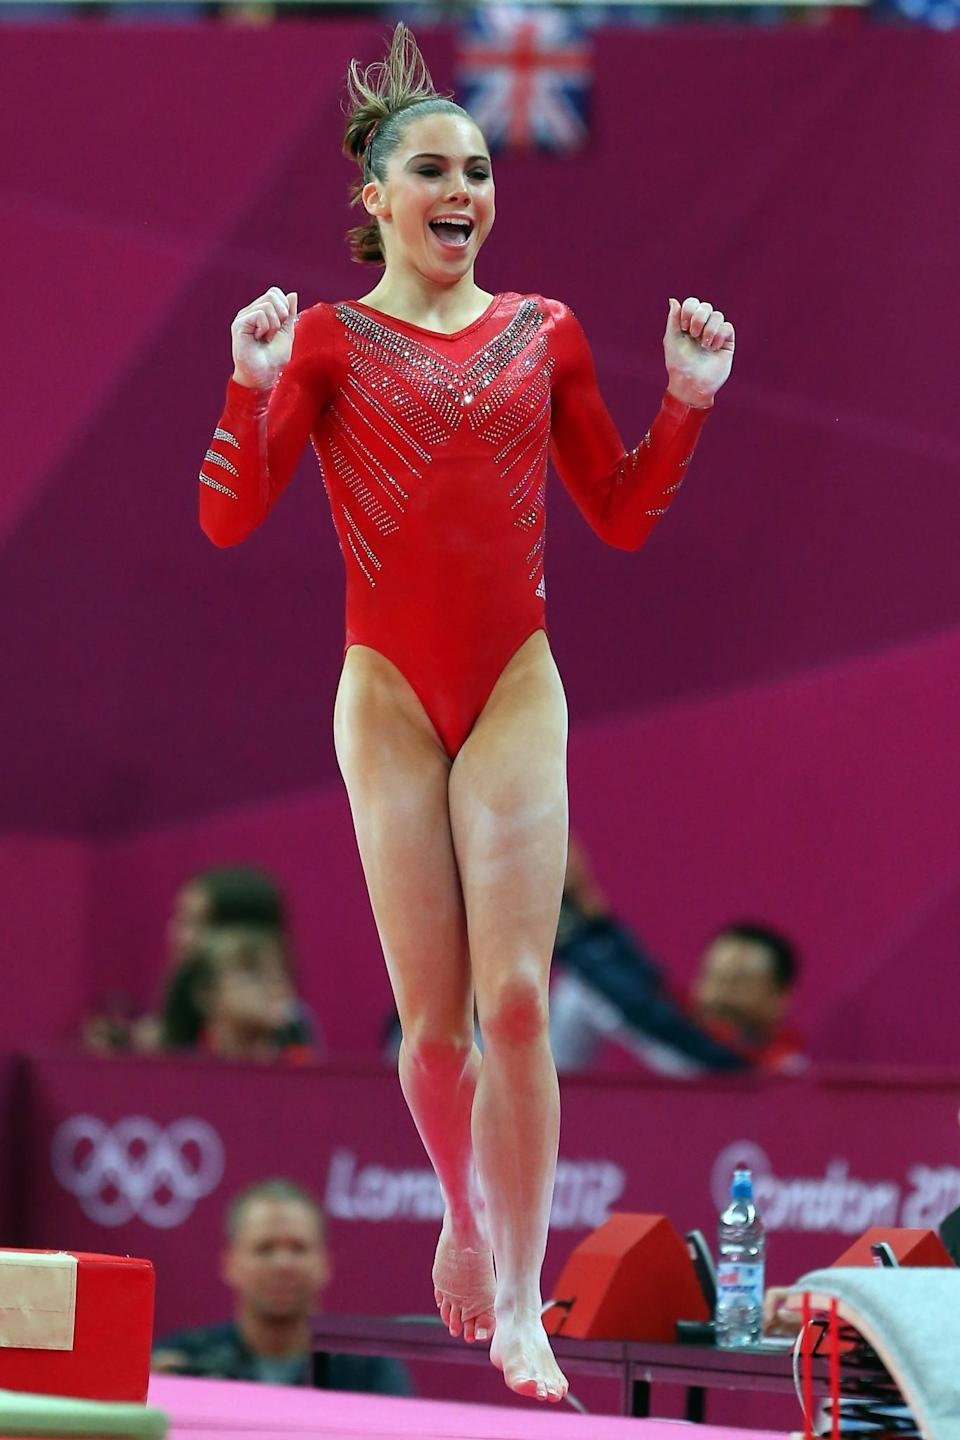 <p>McKayla Maroney Maroney of the United States of America celebrates her performance on the vault in the Artistic Gymnastics Women's Team final on Day 4 of the London 2012 Olympic Games at North Greenwich Arena on July 31, 2012 in London, England. (Photo by Ronald Martinez/Getty Images) </p>